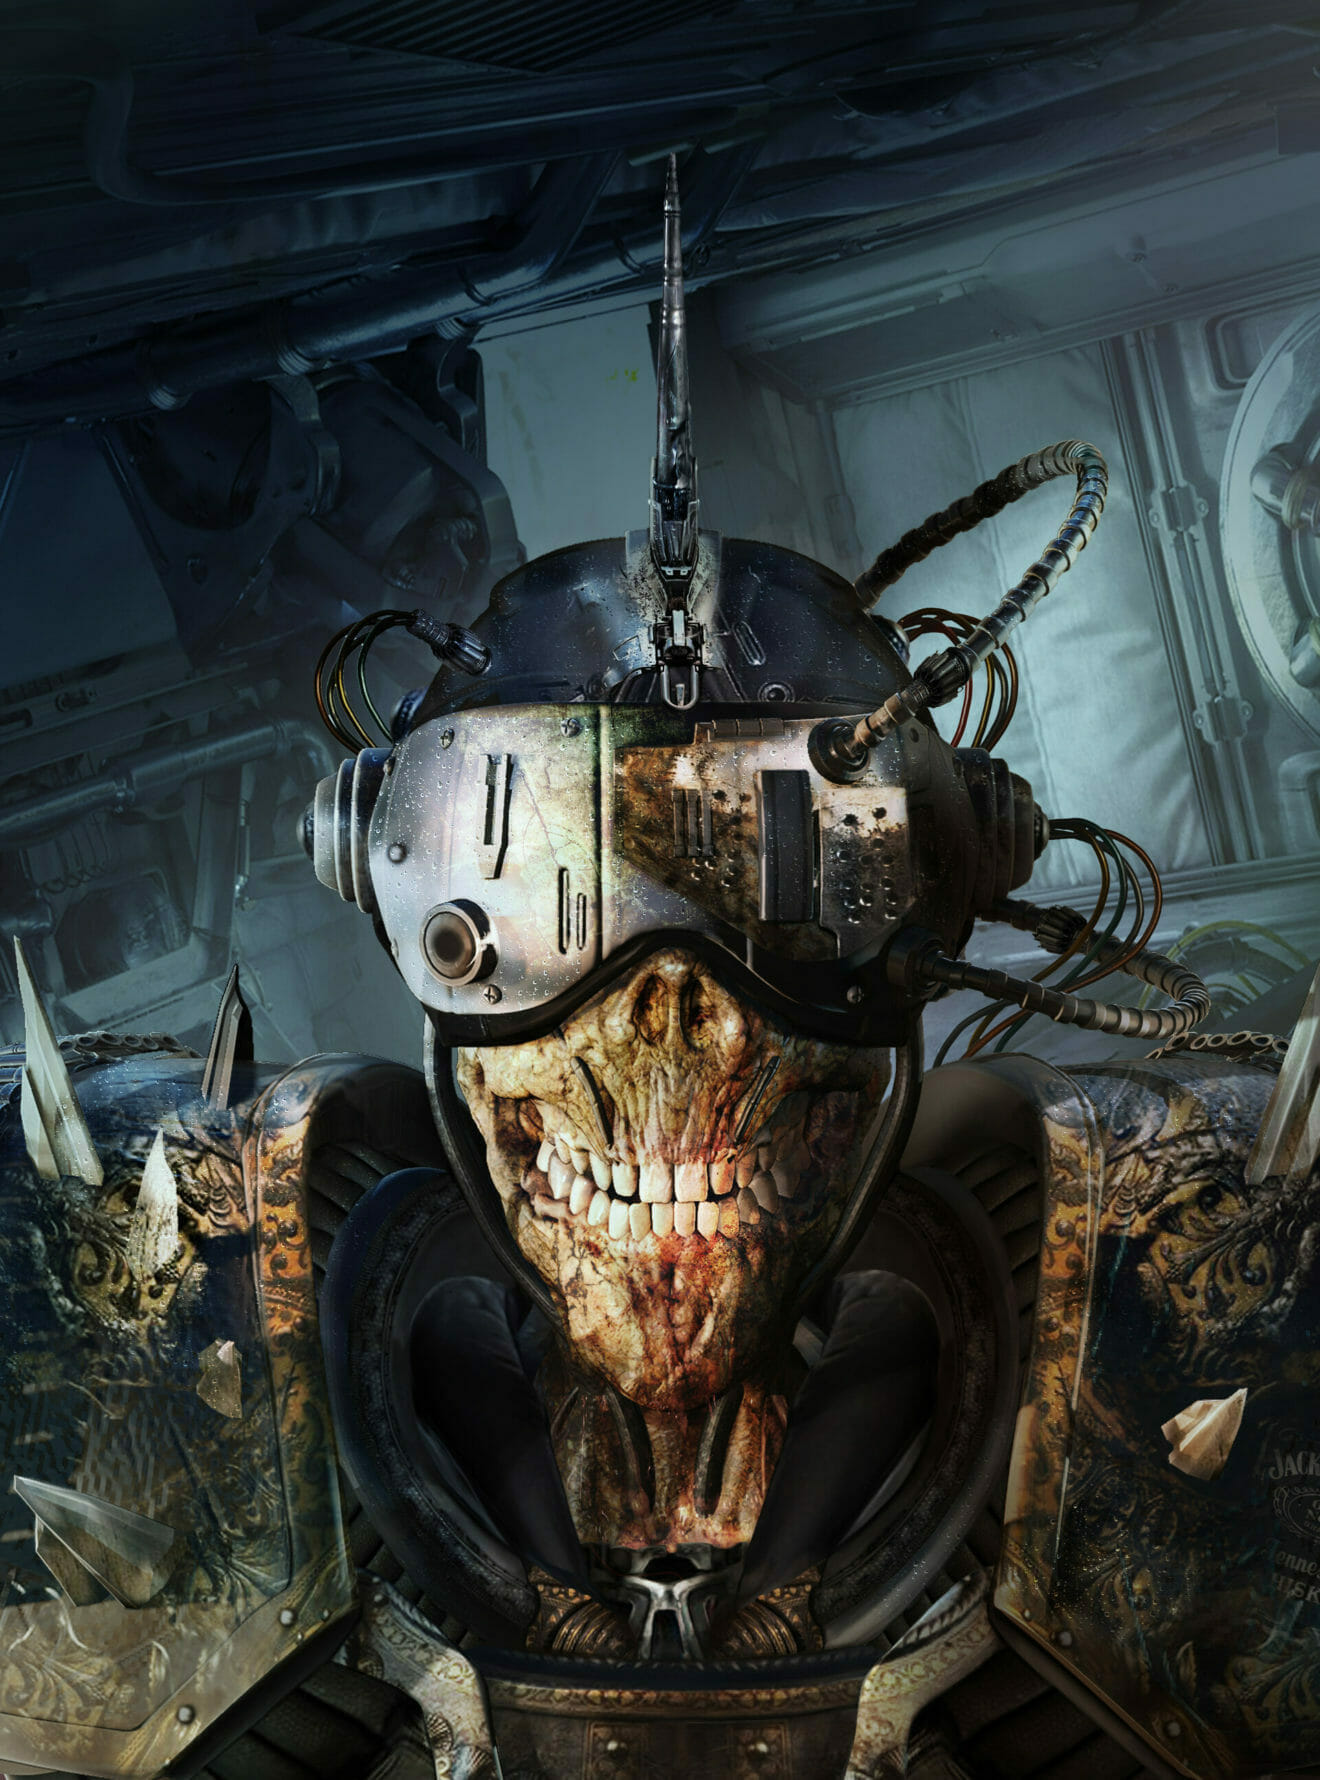 Fear the macabre art of Carlos Villas